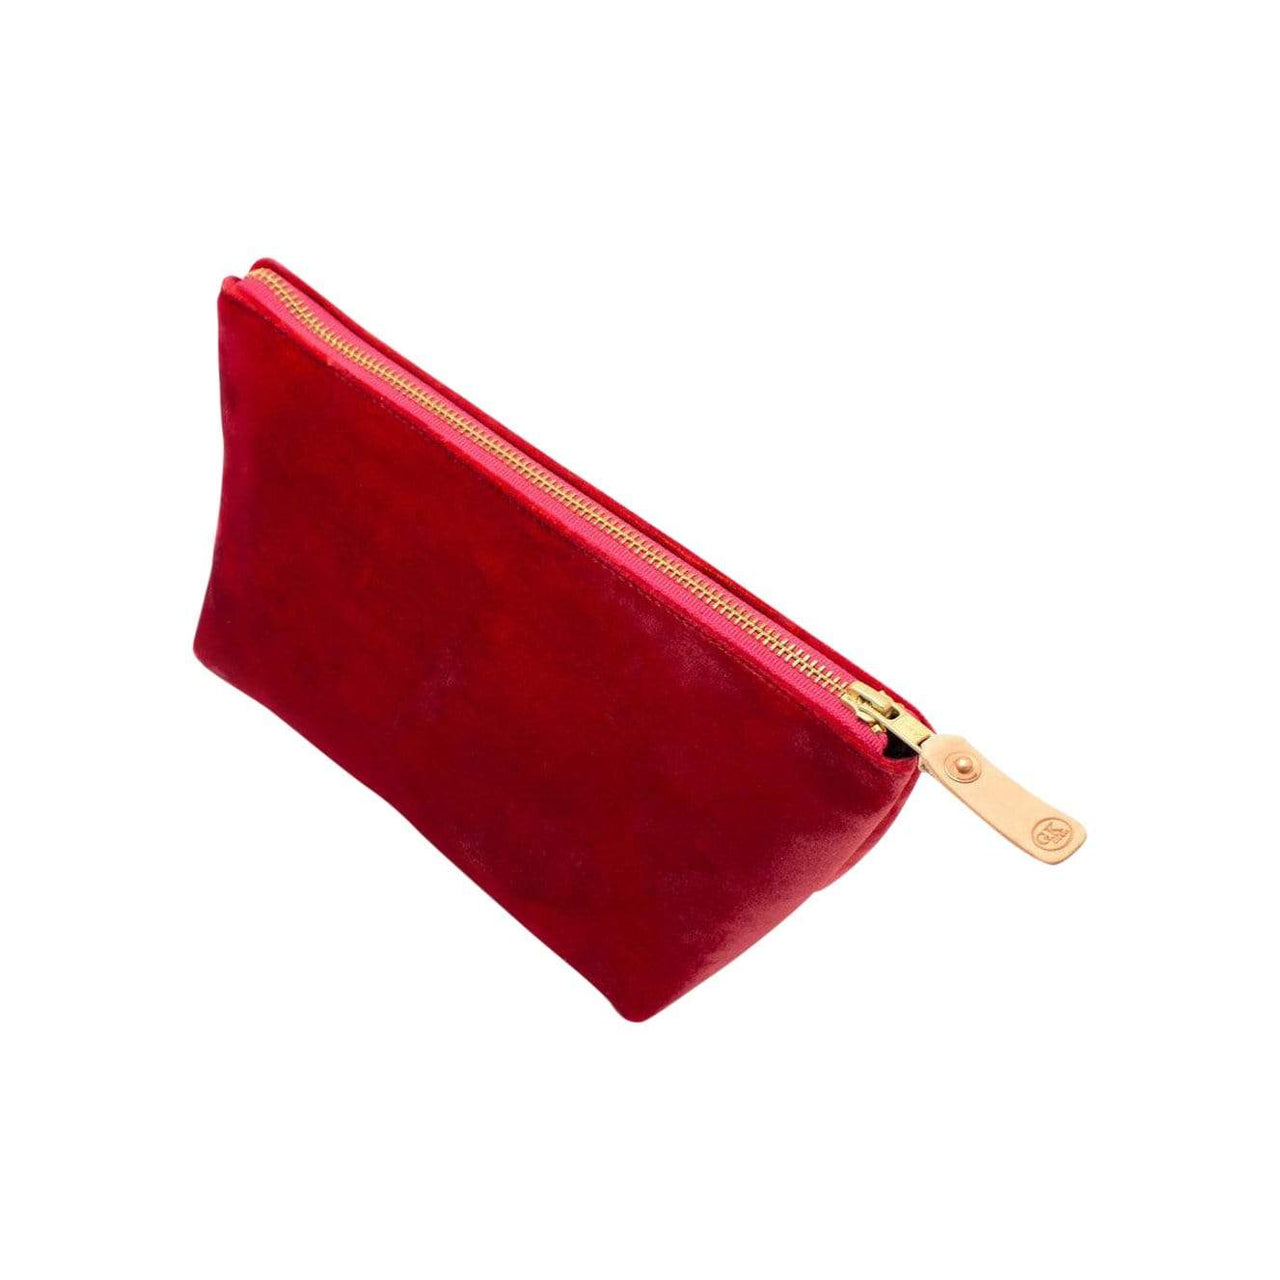 General Knot & Co. Wallets, Pouches & Accessories Rose Velvet Travel Clutch